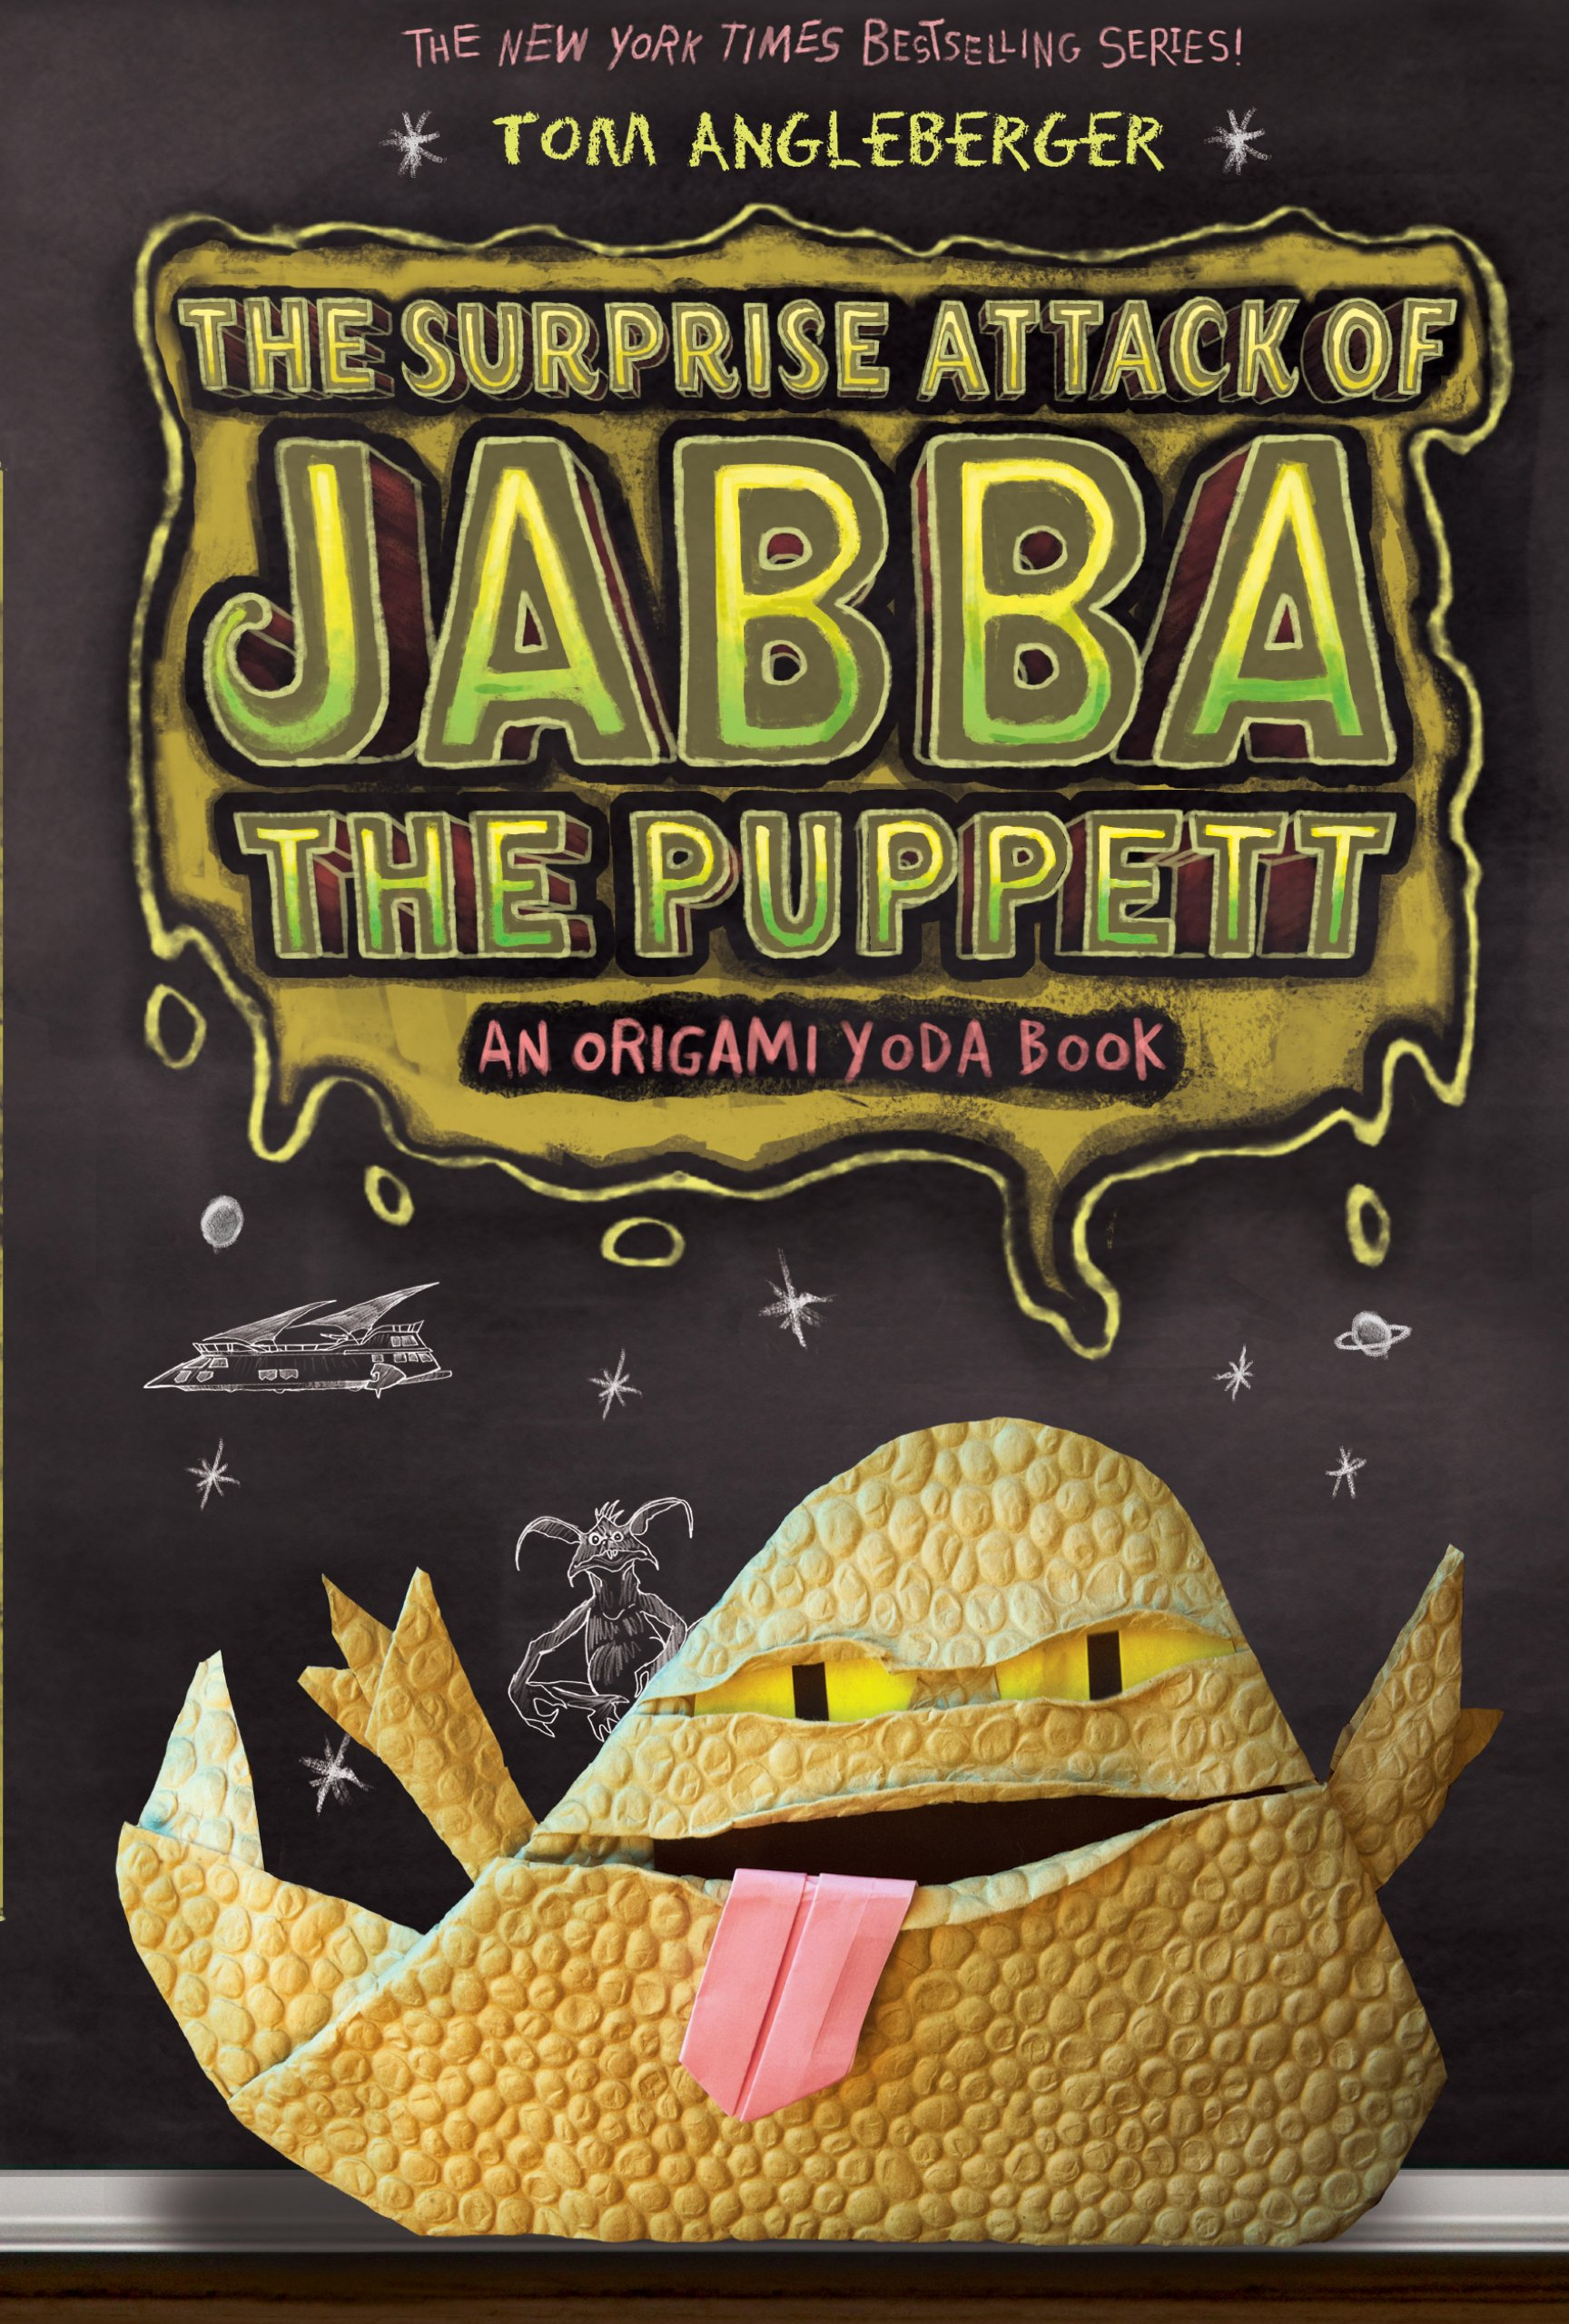 The Surprise Attack of Jabba the Puppet